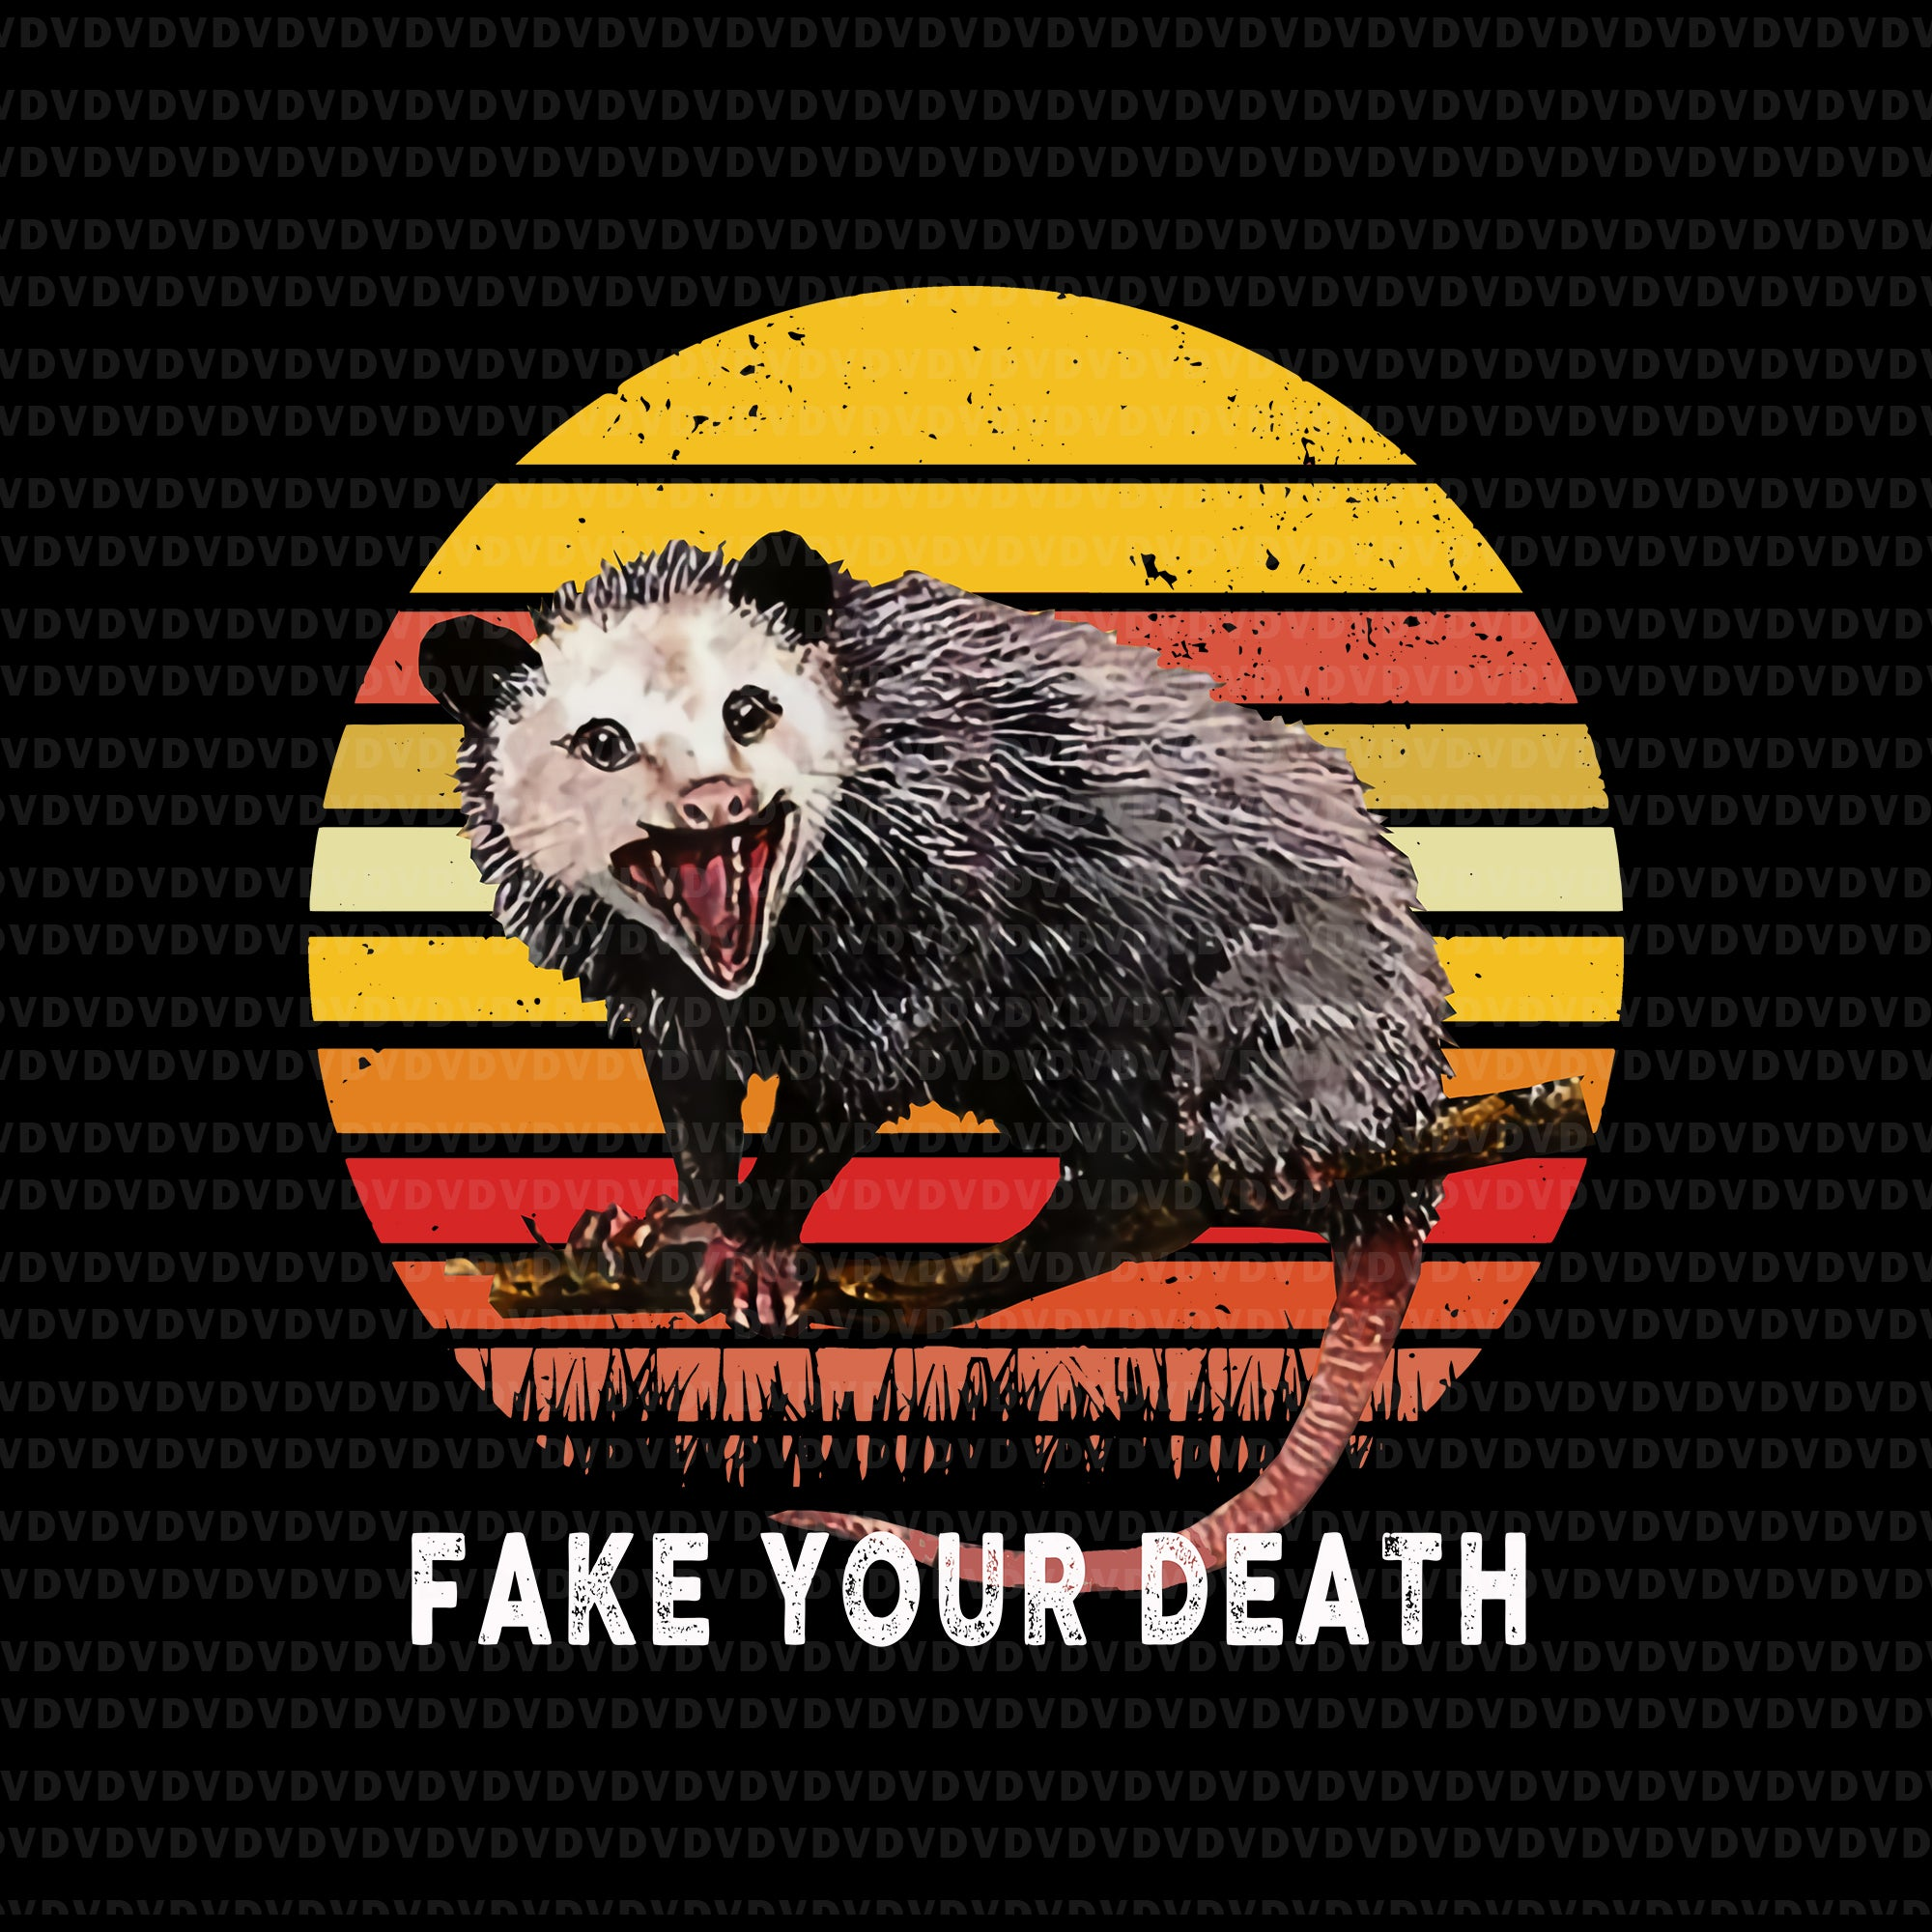 Live ugly fake your death opossum png, live ugly fake your death opossum, live ugly fake your death opossum design